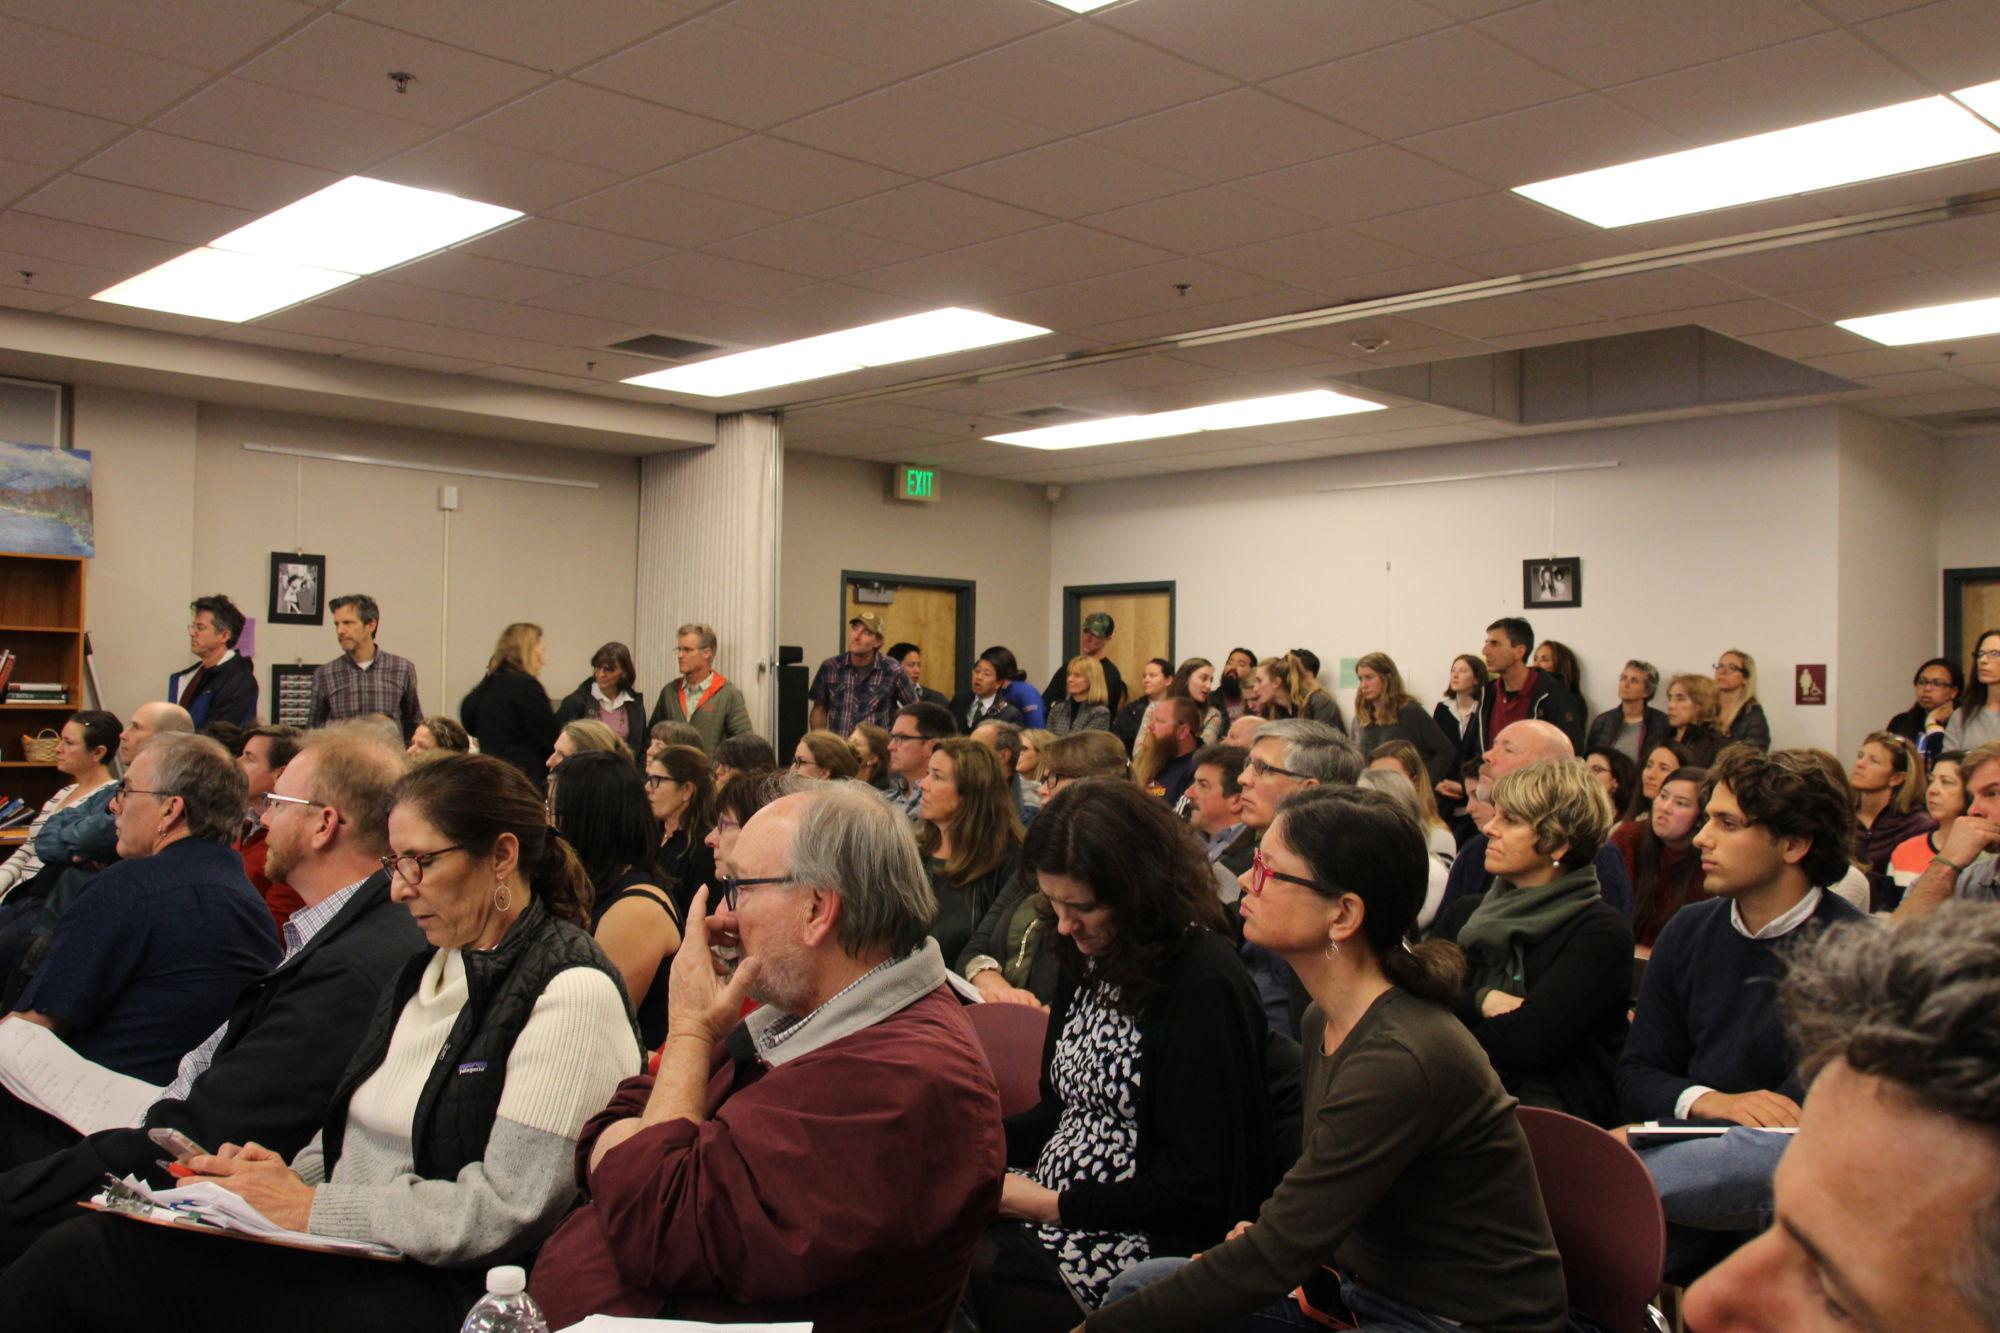 Community+members+lined+the+walls+of+the+last+board+meeting+to+address+their+concerns+regarding+program+cuts.+